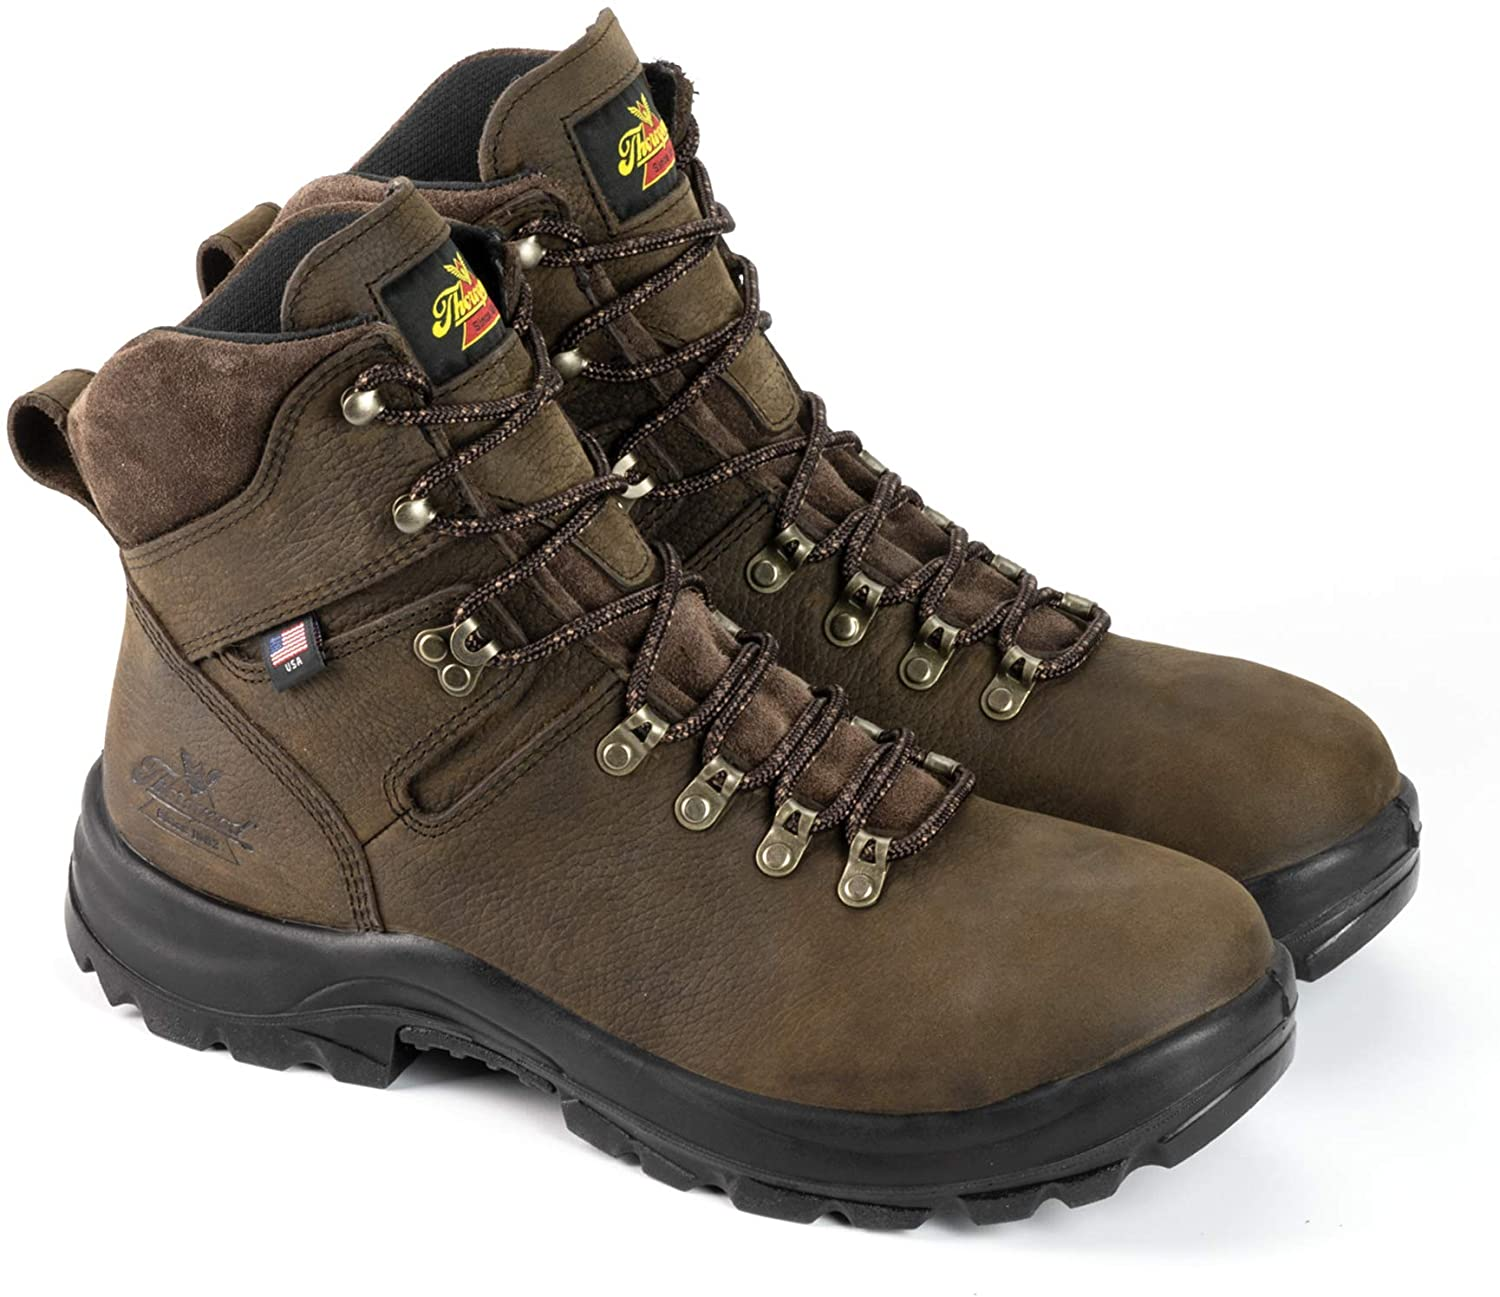 Thorogood Men's American Max 53% OFF Union Safety Series Toe Boot 40% OFF Cheap Sale